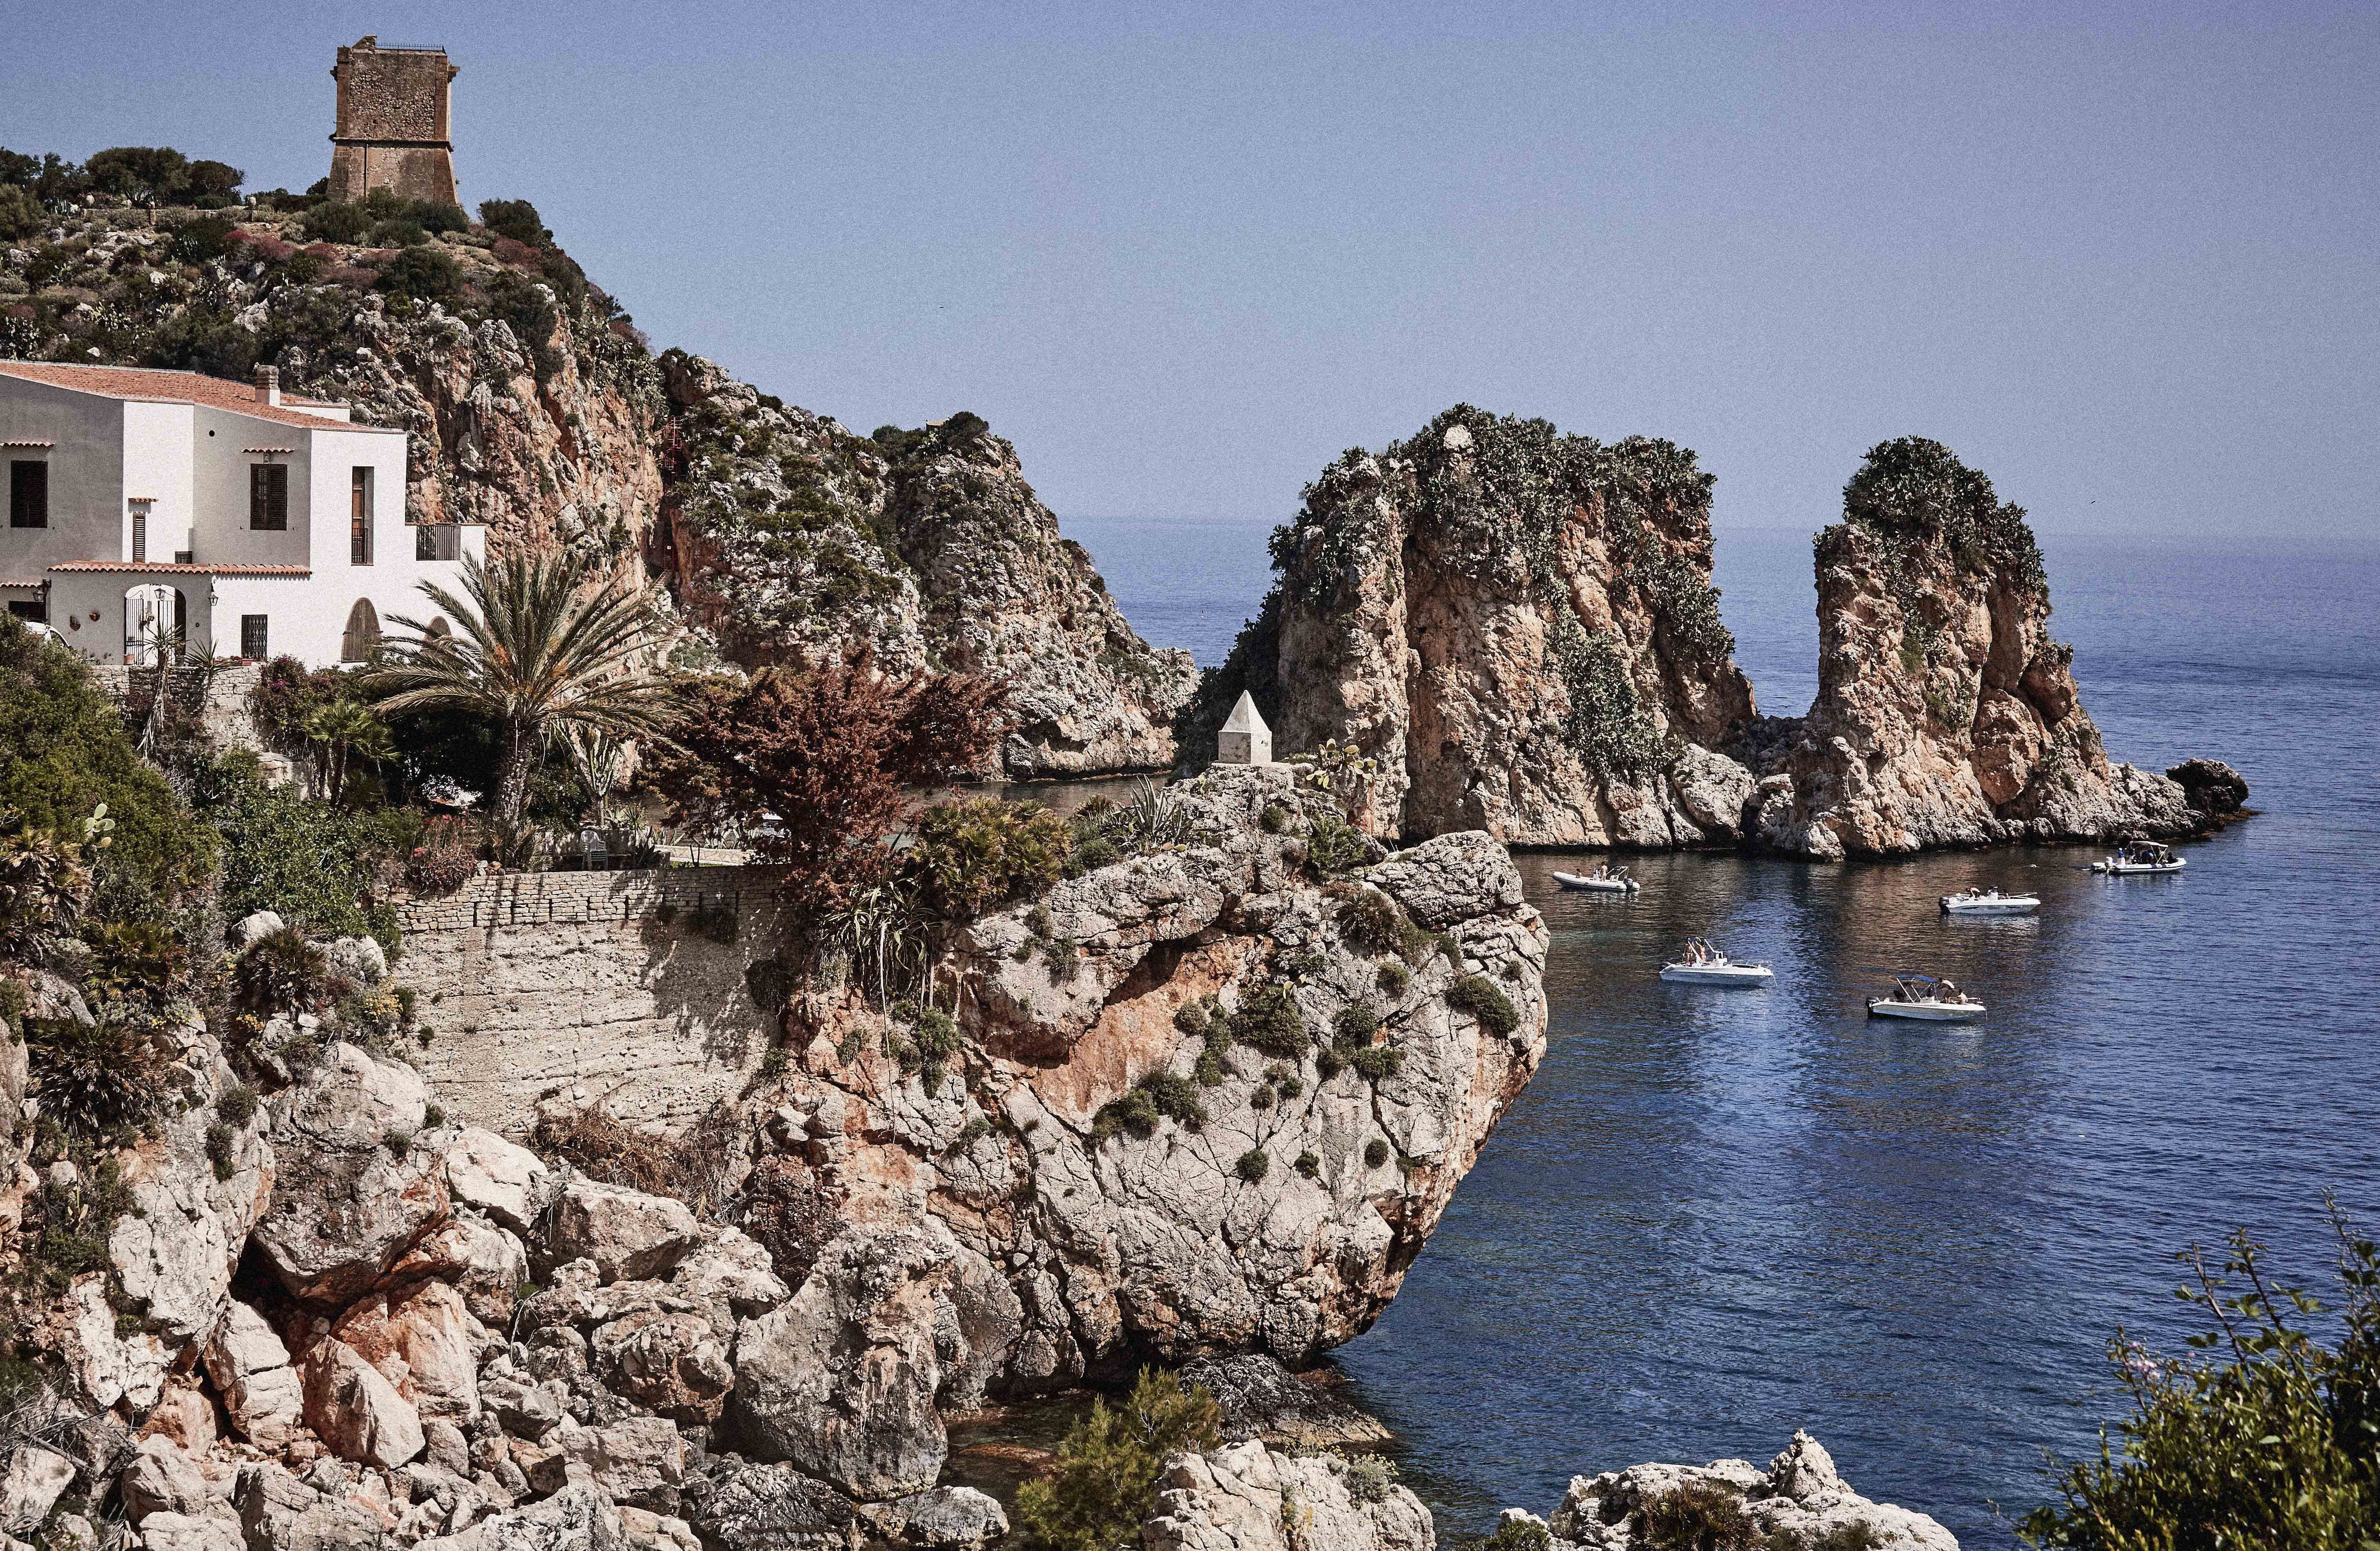 Scopello_0619_0P4A1895_X_X